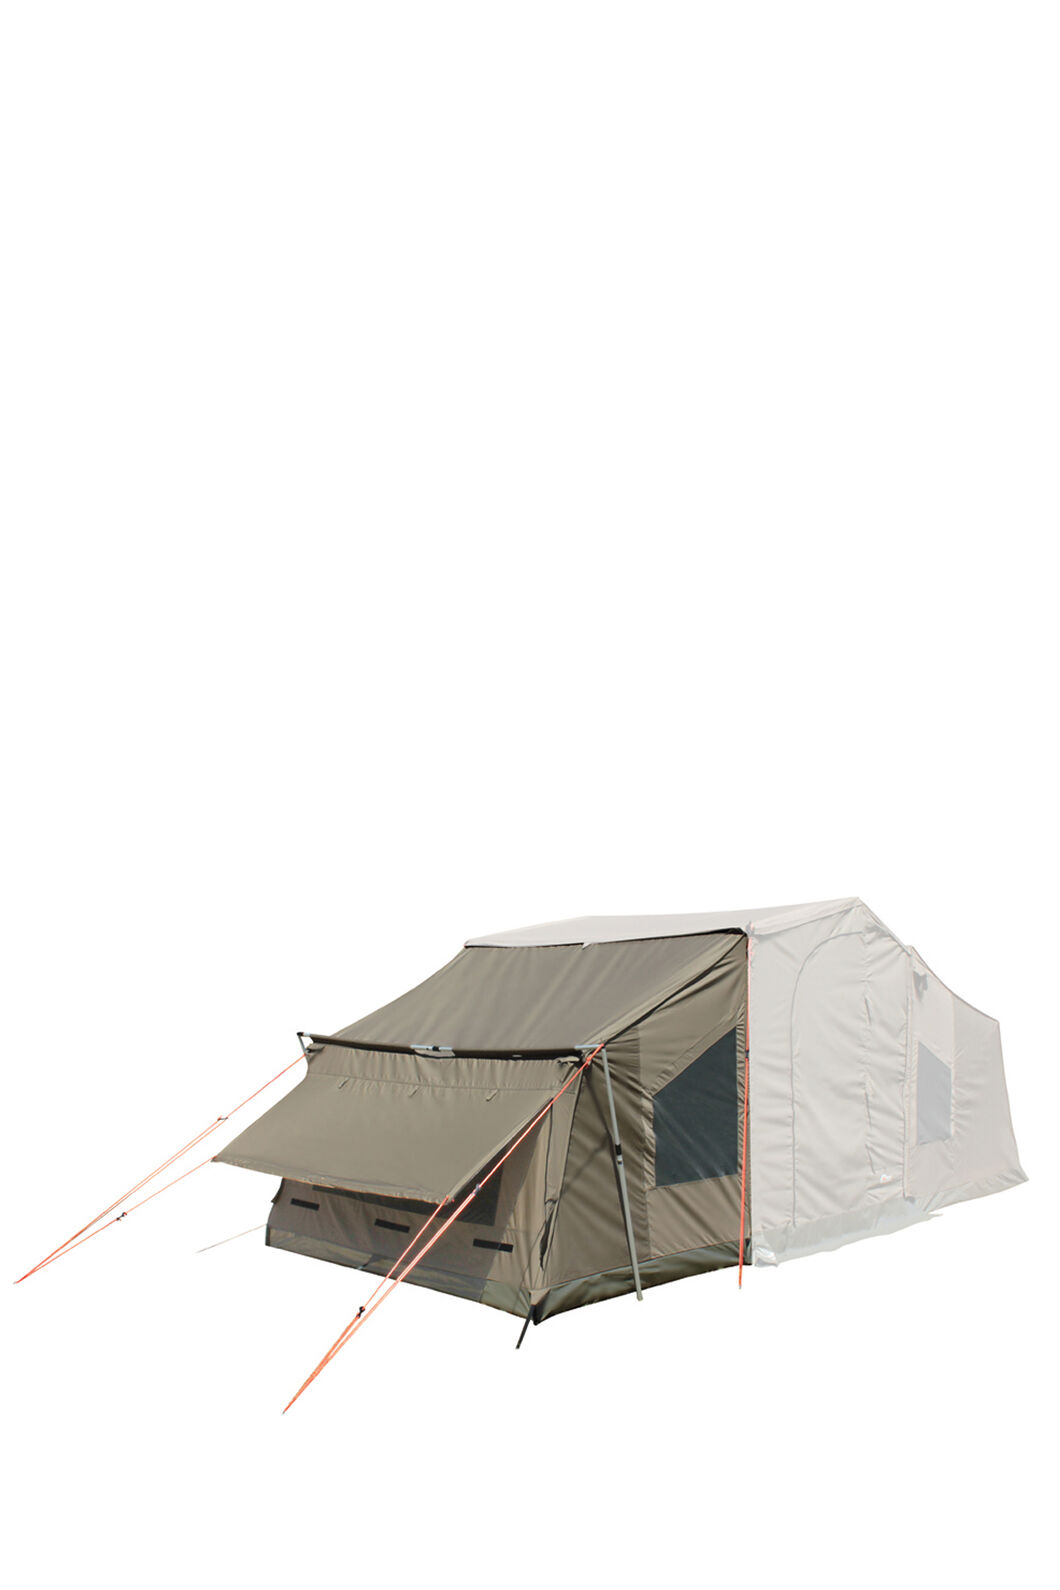 Oztent RV5 Tag Along Touring Tent, None, hi-res